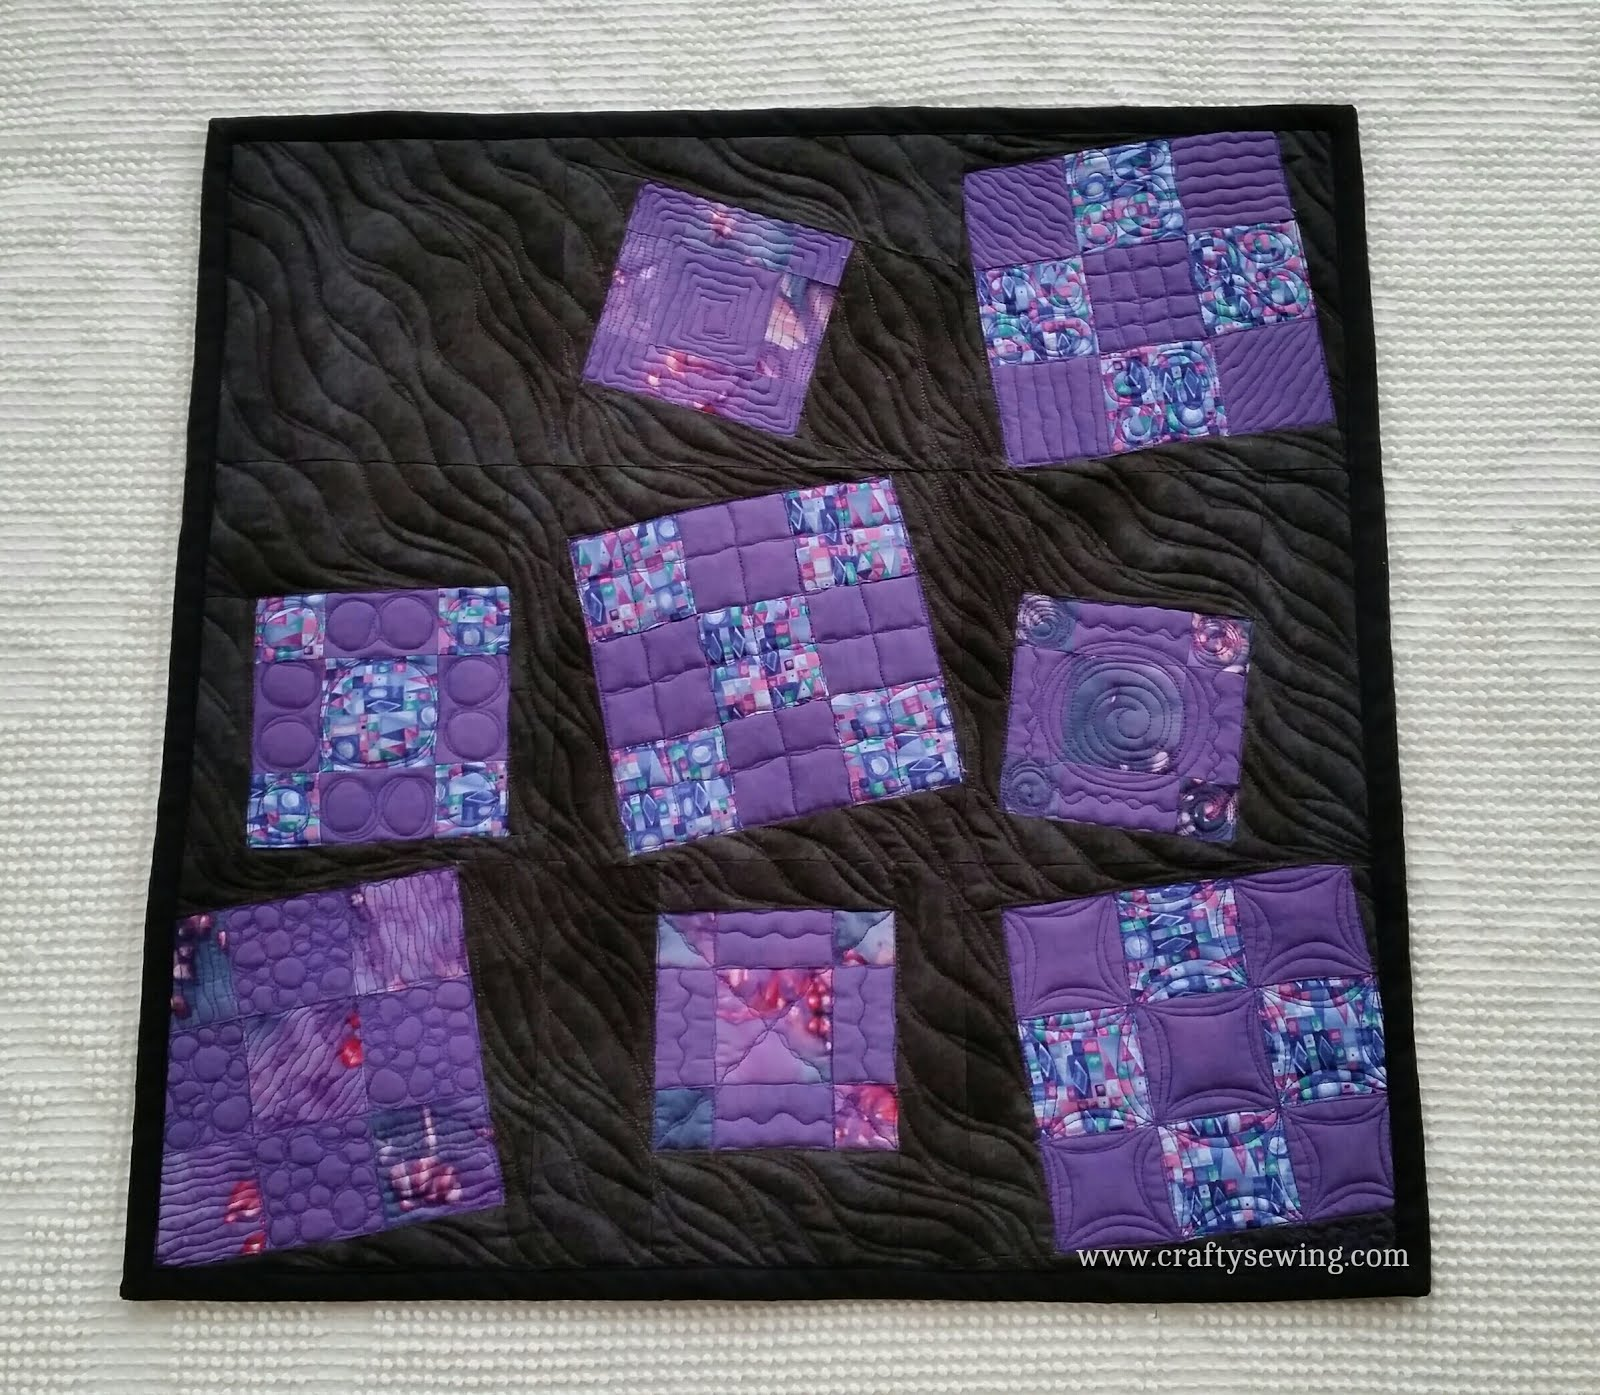 2015 Off Season Project Quilting - October